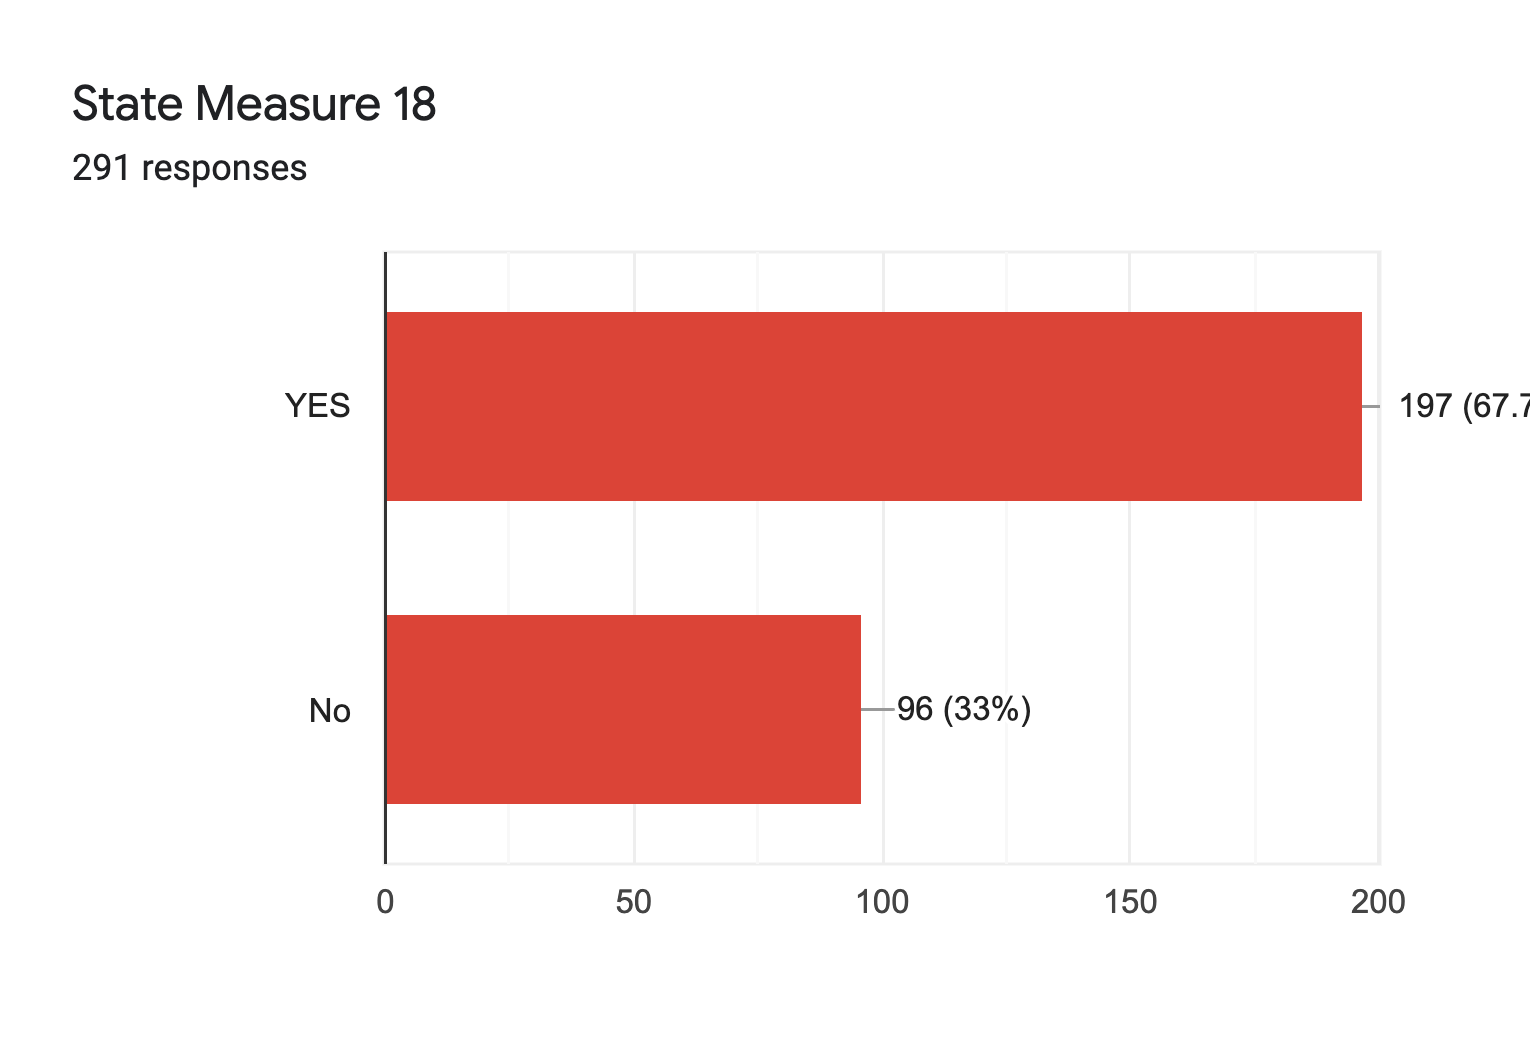 Forms response chart. Question title: State Measure 18. Number of responses: 291 responses.